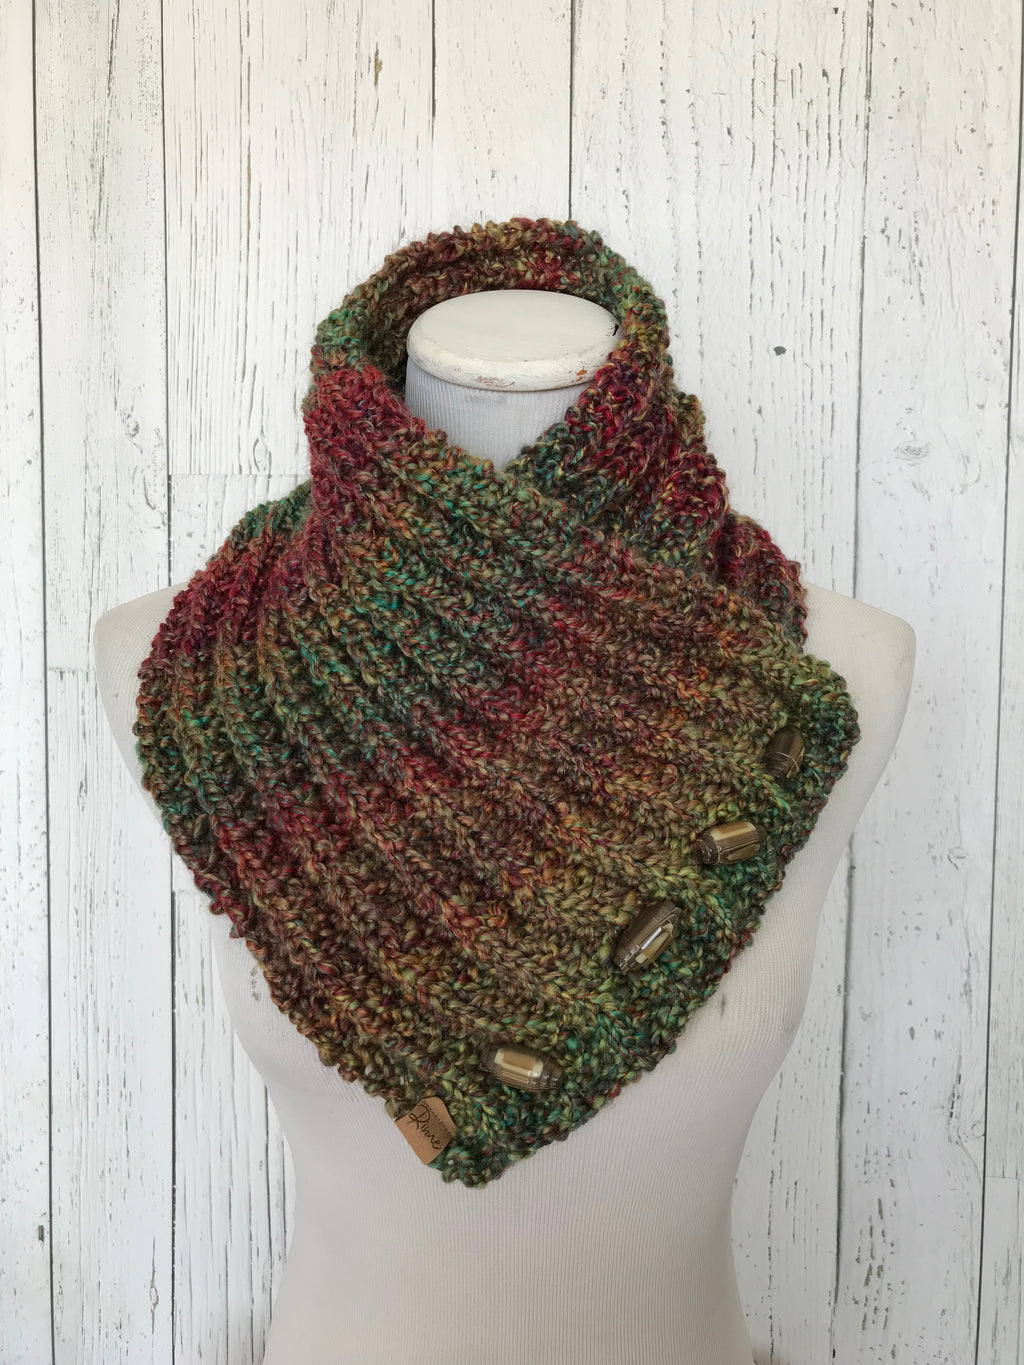 Classic Knit Button Cowl in green, red and brown tones, vintage toggle buttons